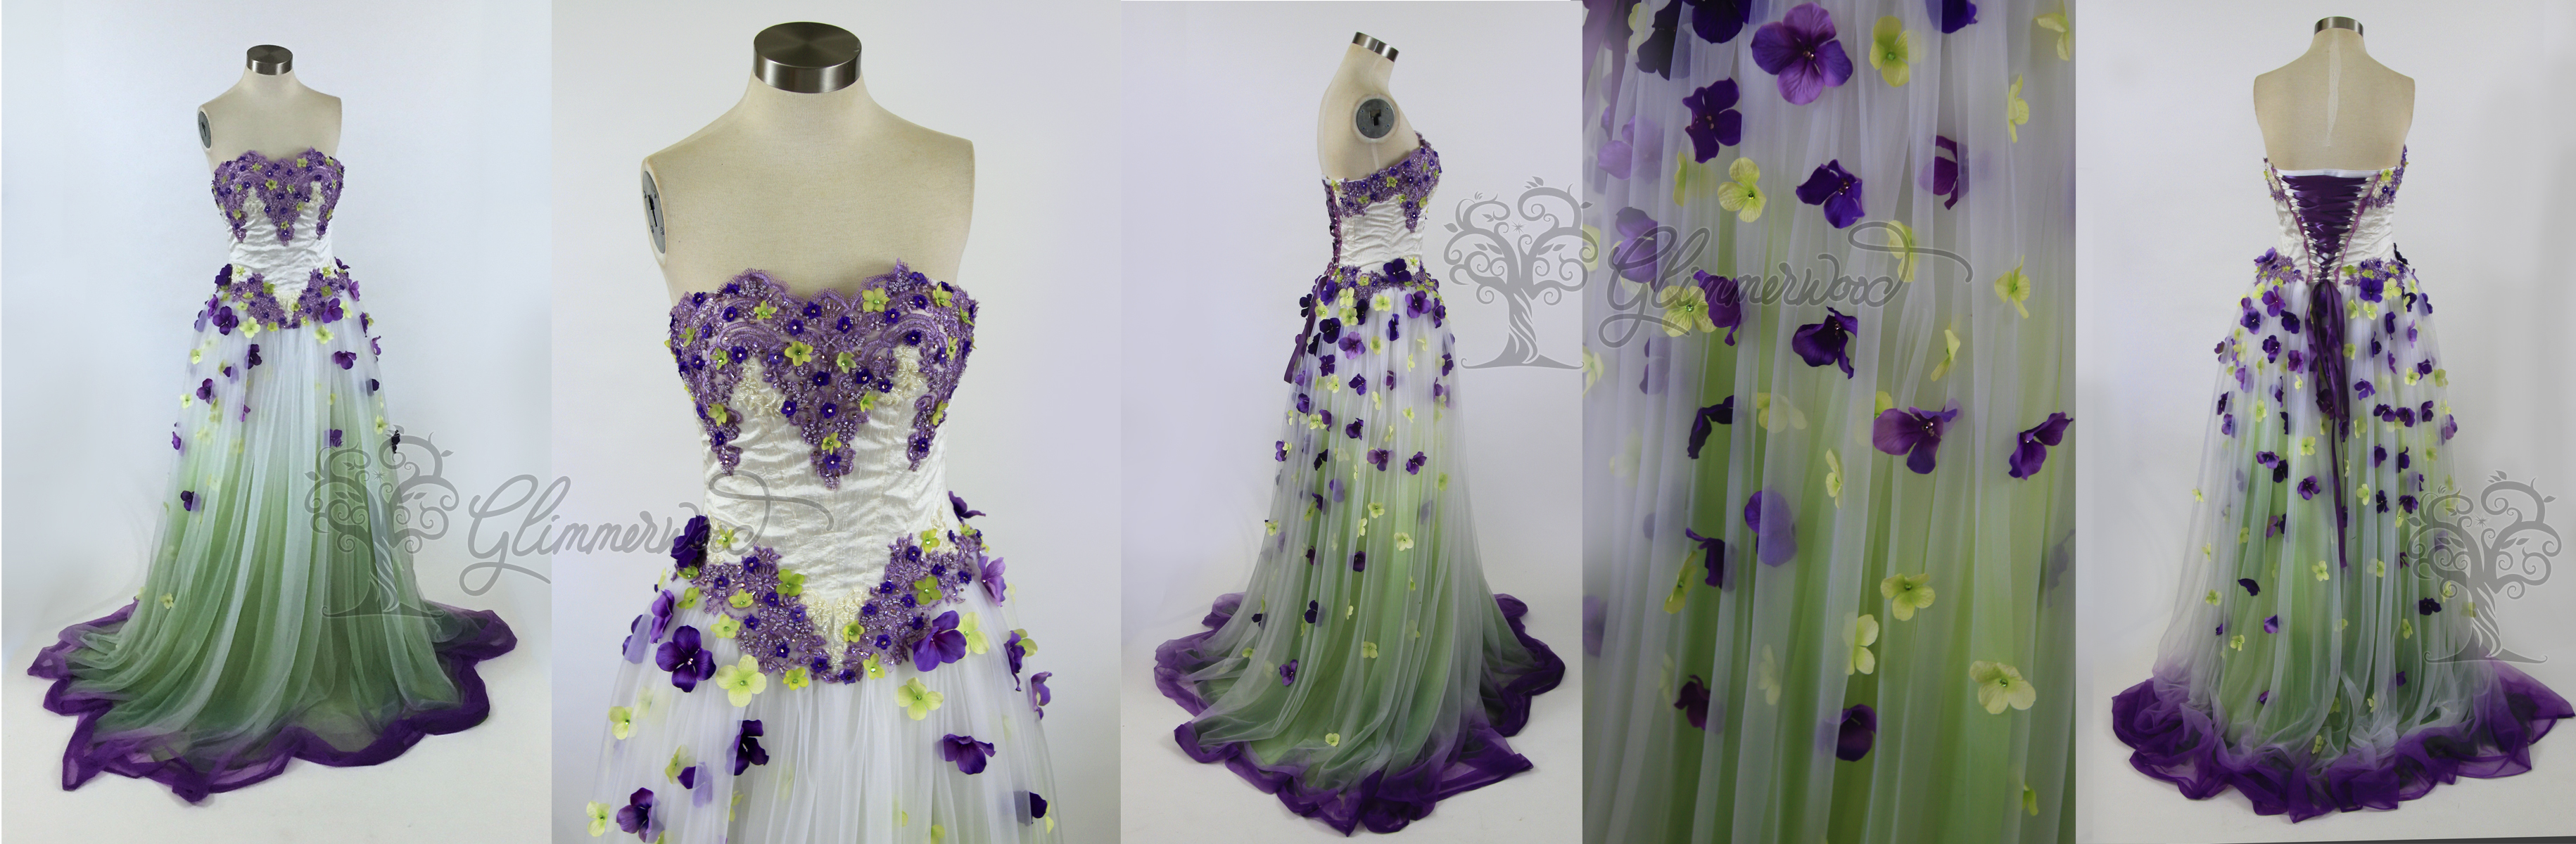 Wisteria Wedding Gown